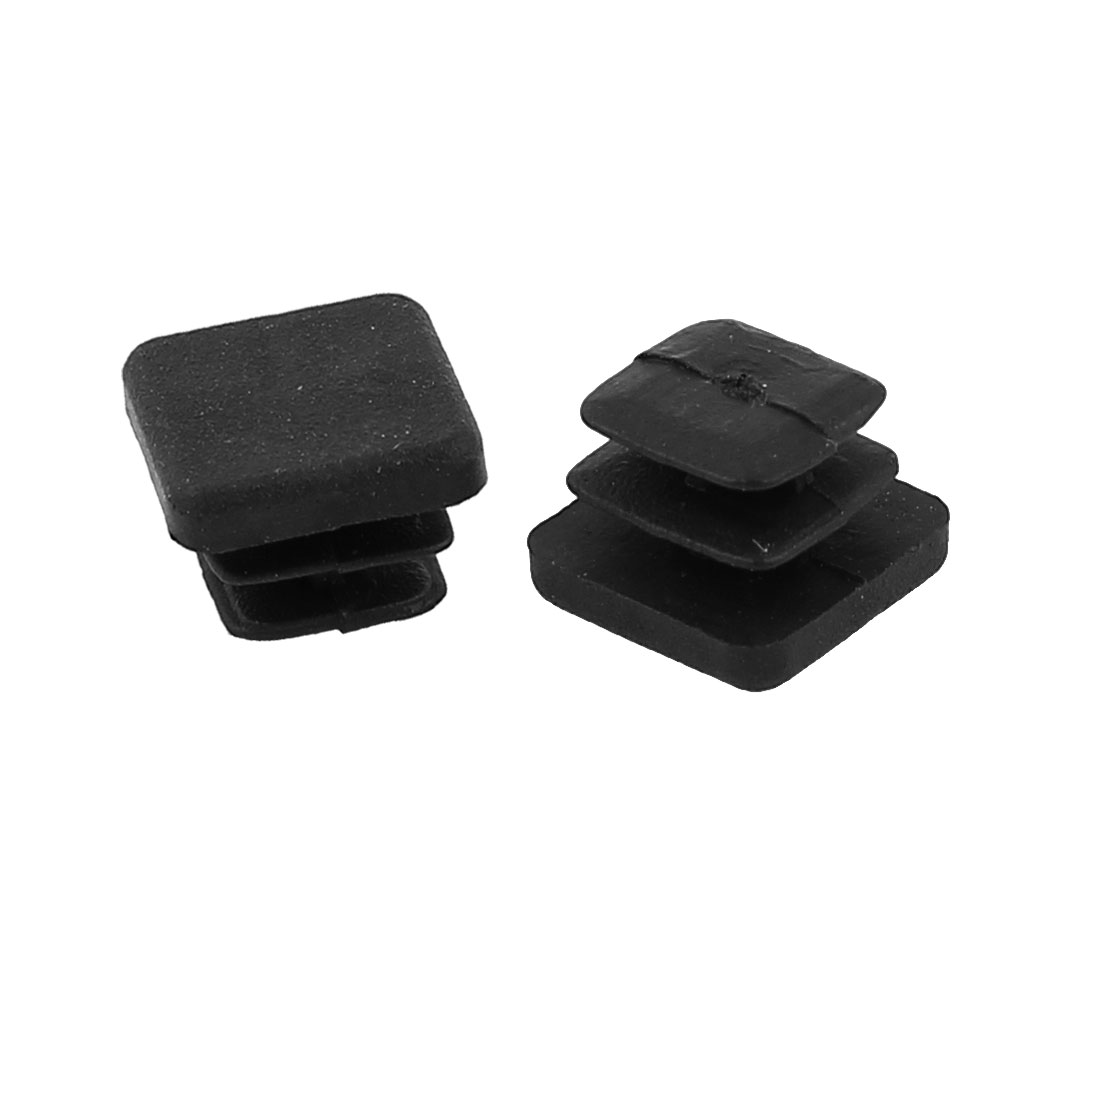 2 Pieces Black Plastic Square Blanking End Caps Tubing Tube Cover Inserts 10mm x 10mm